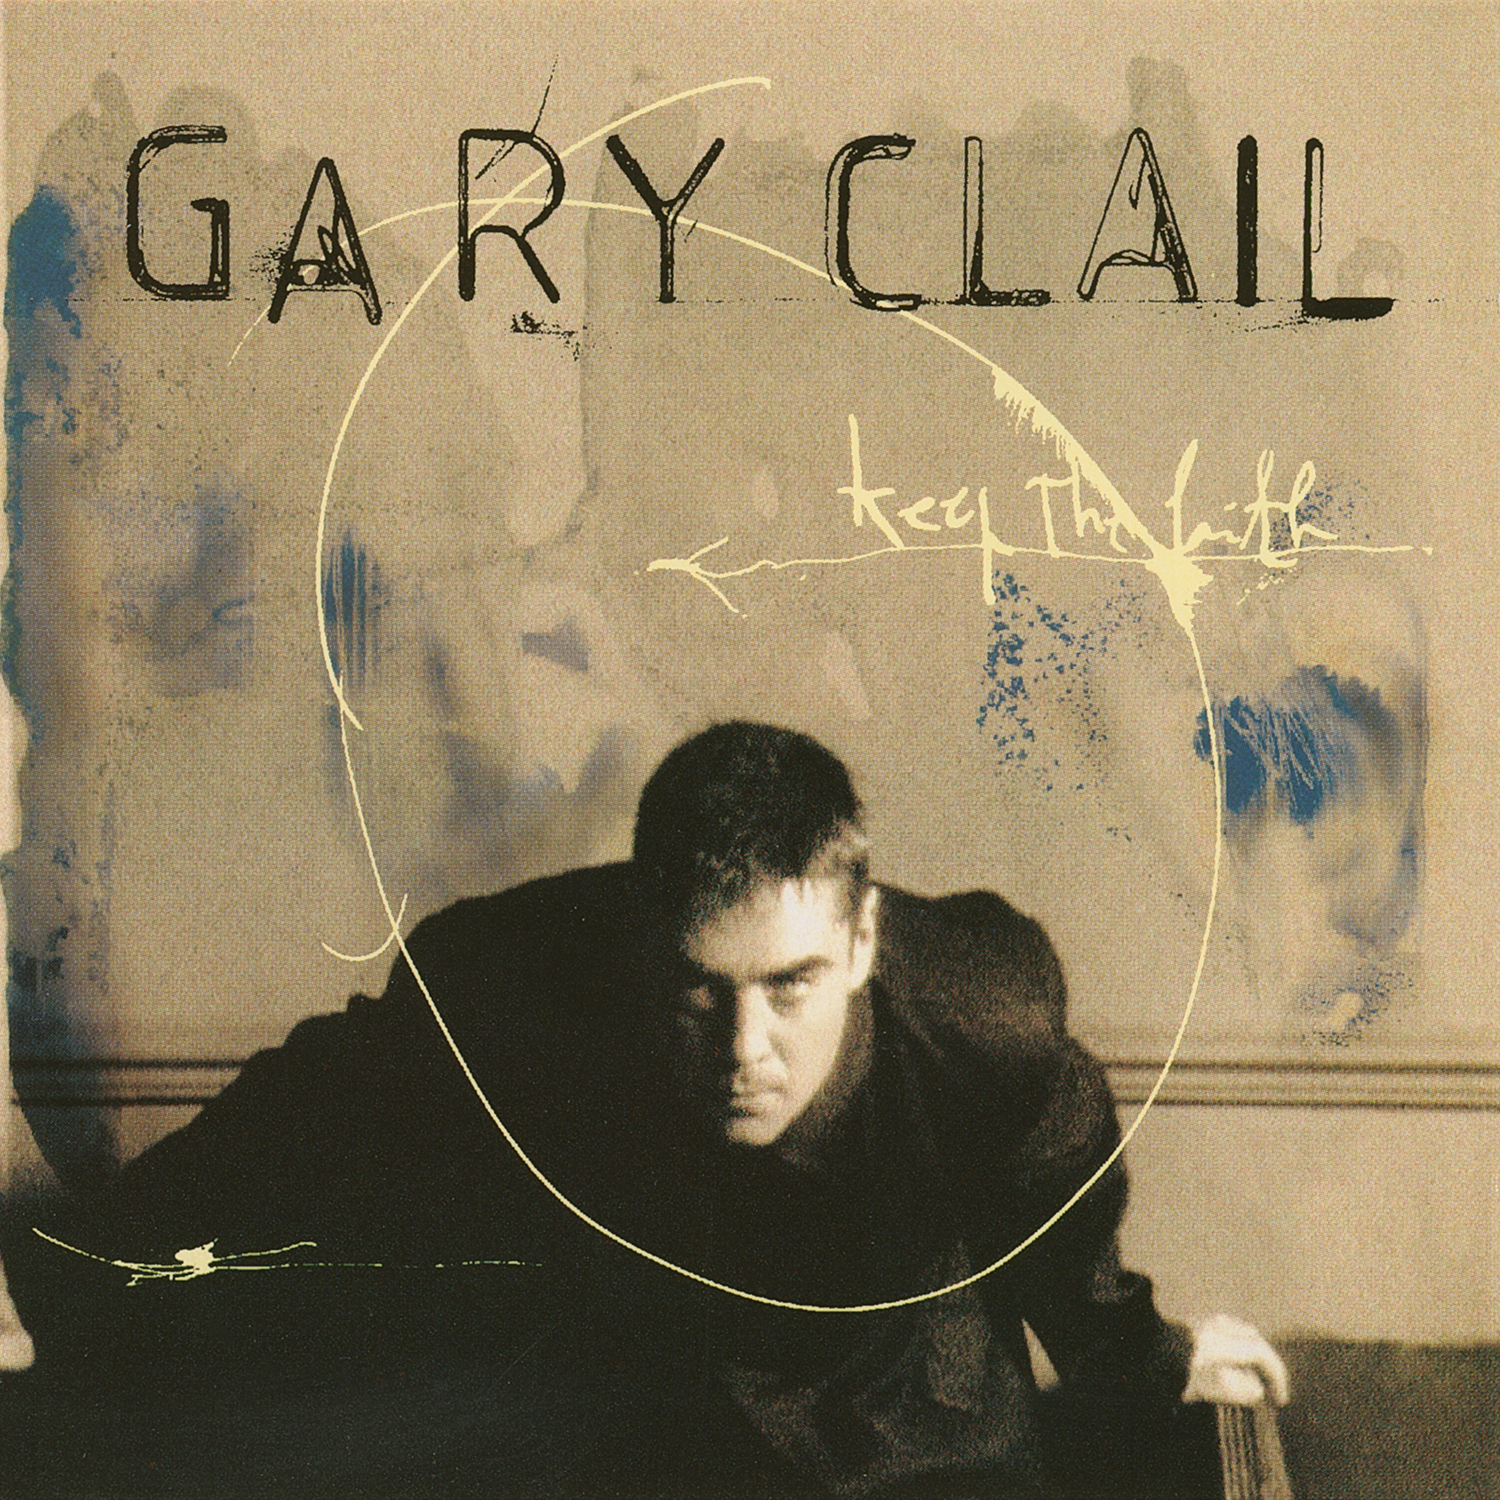 Gary Clail / Keep the faith